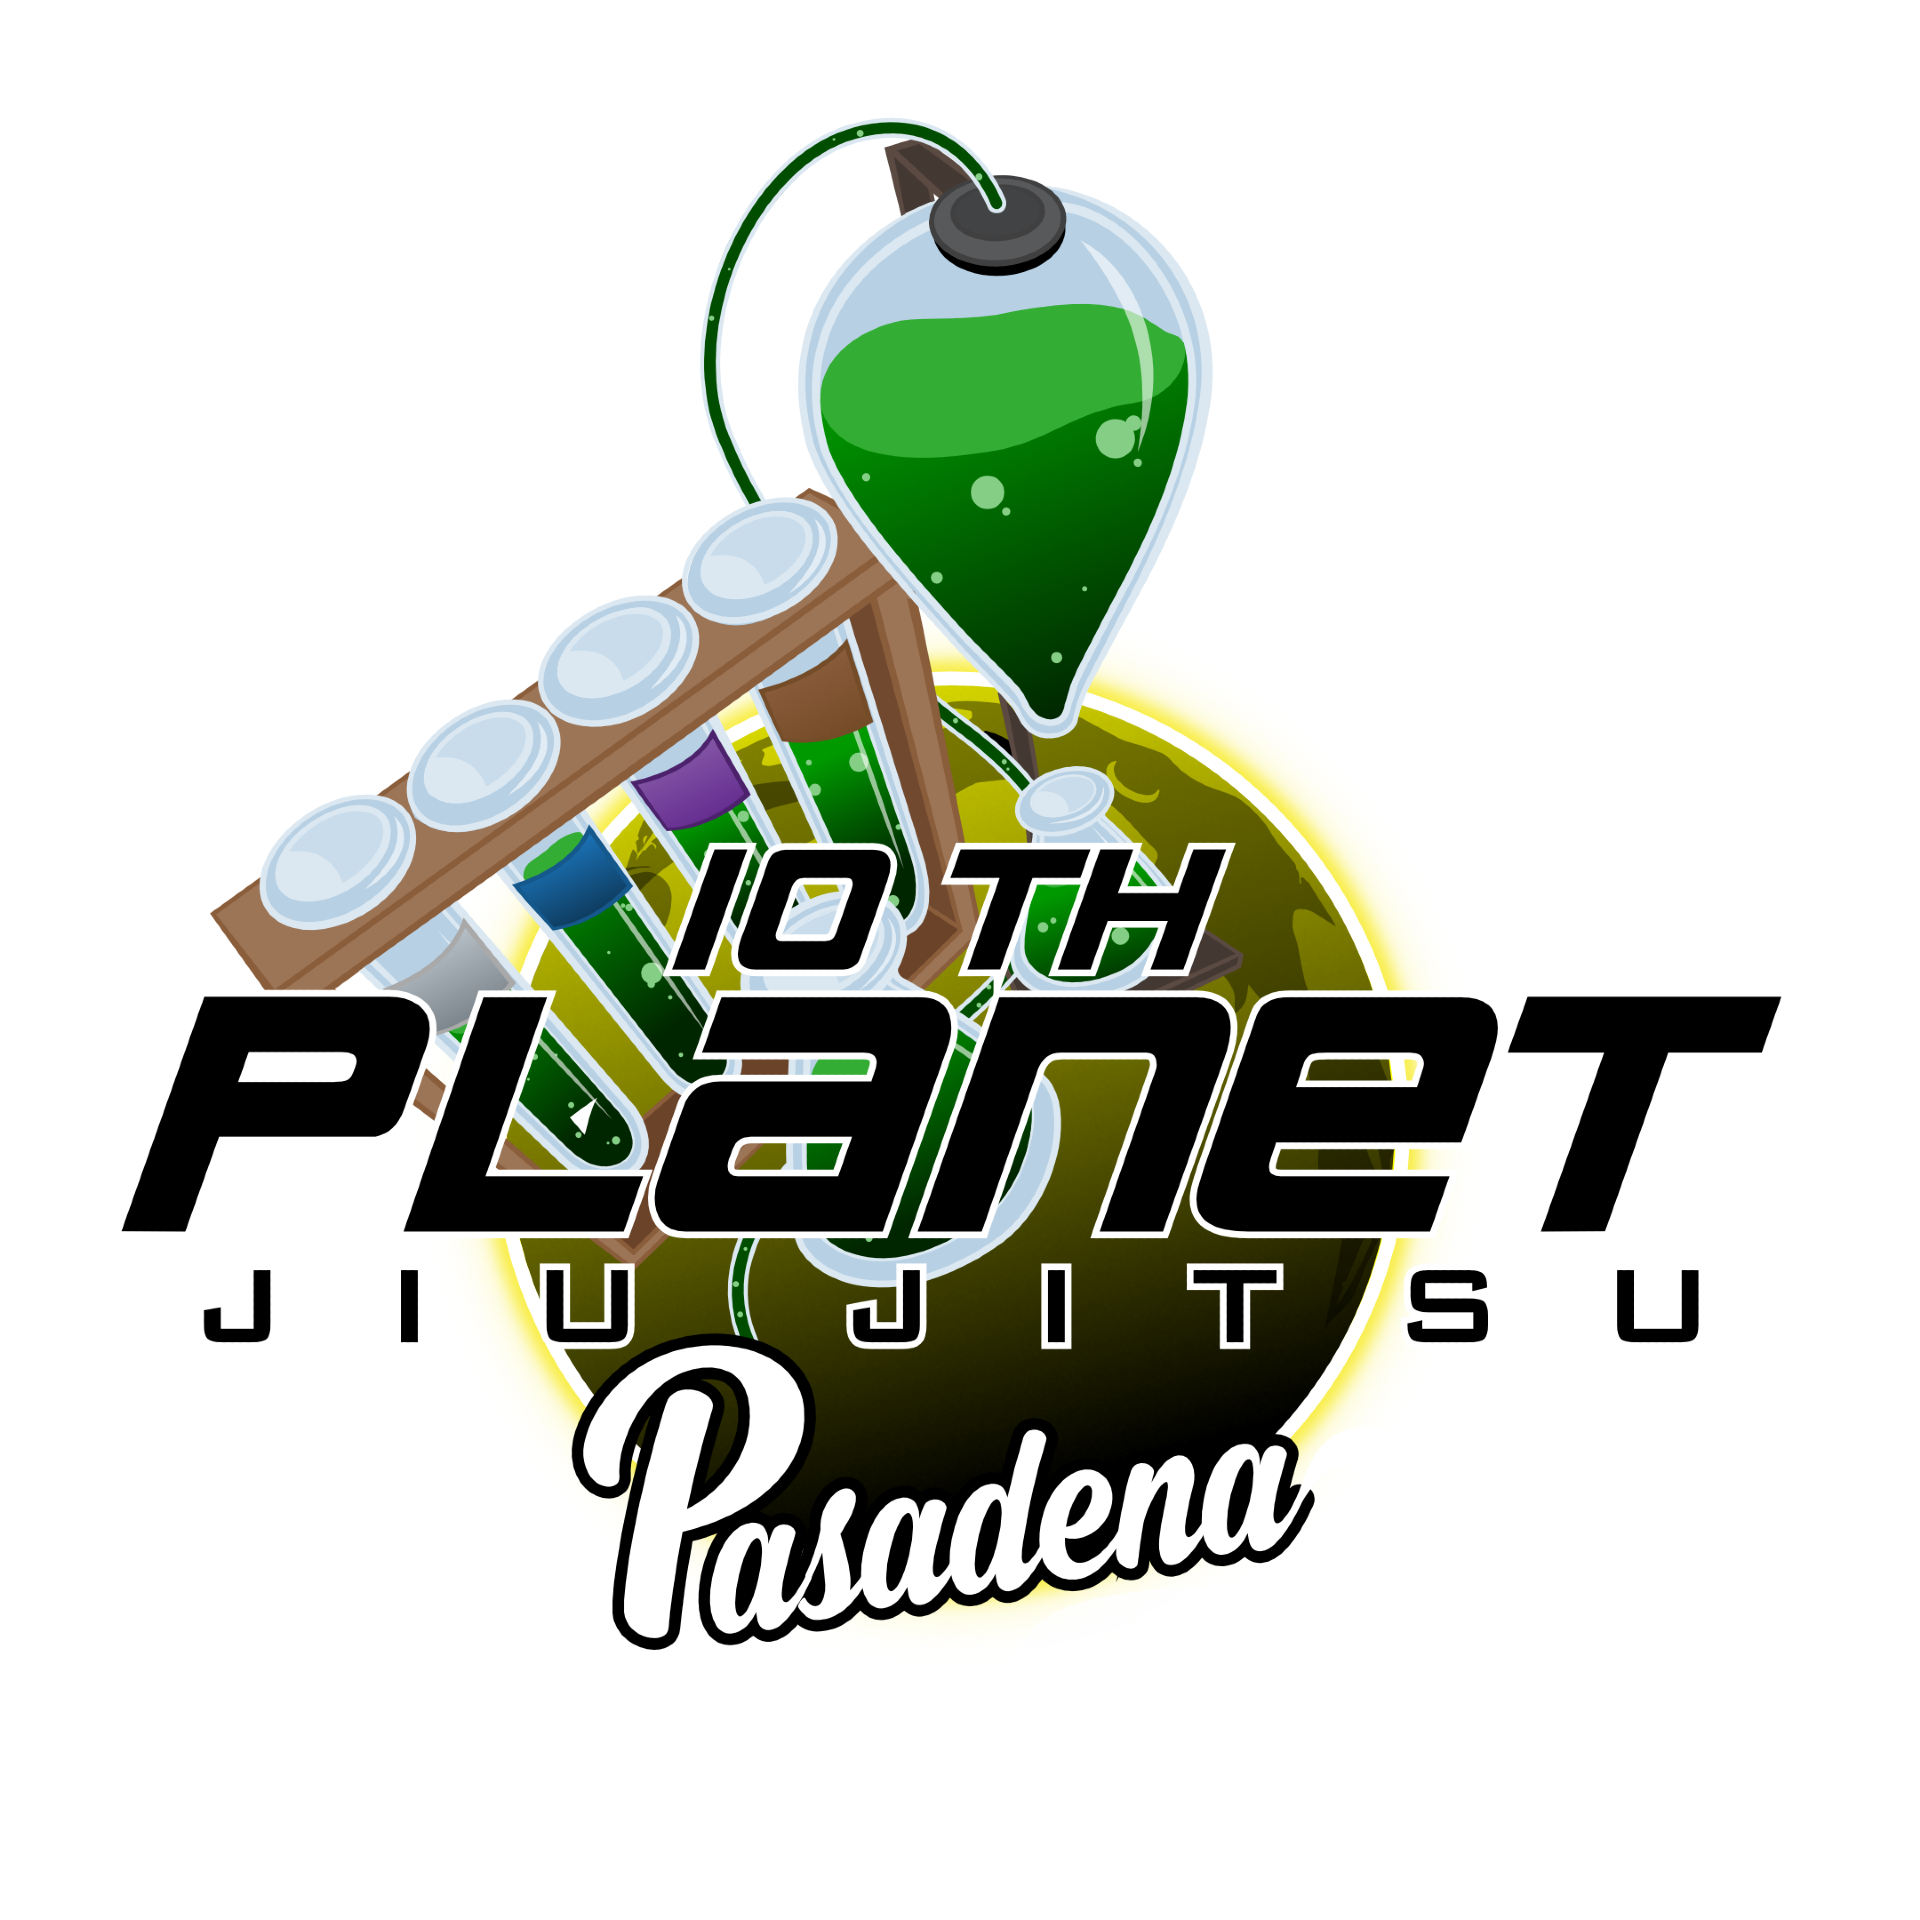 10th Planet Pasadena